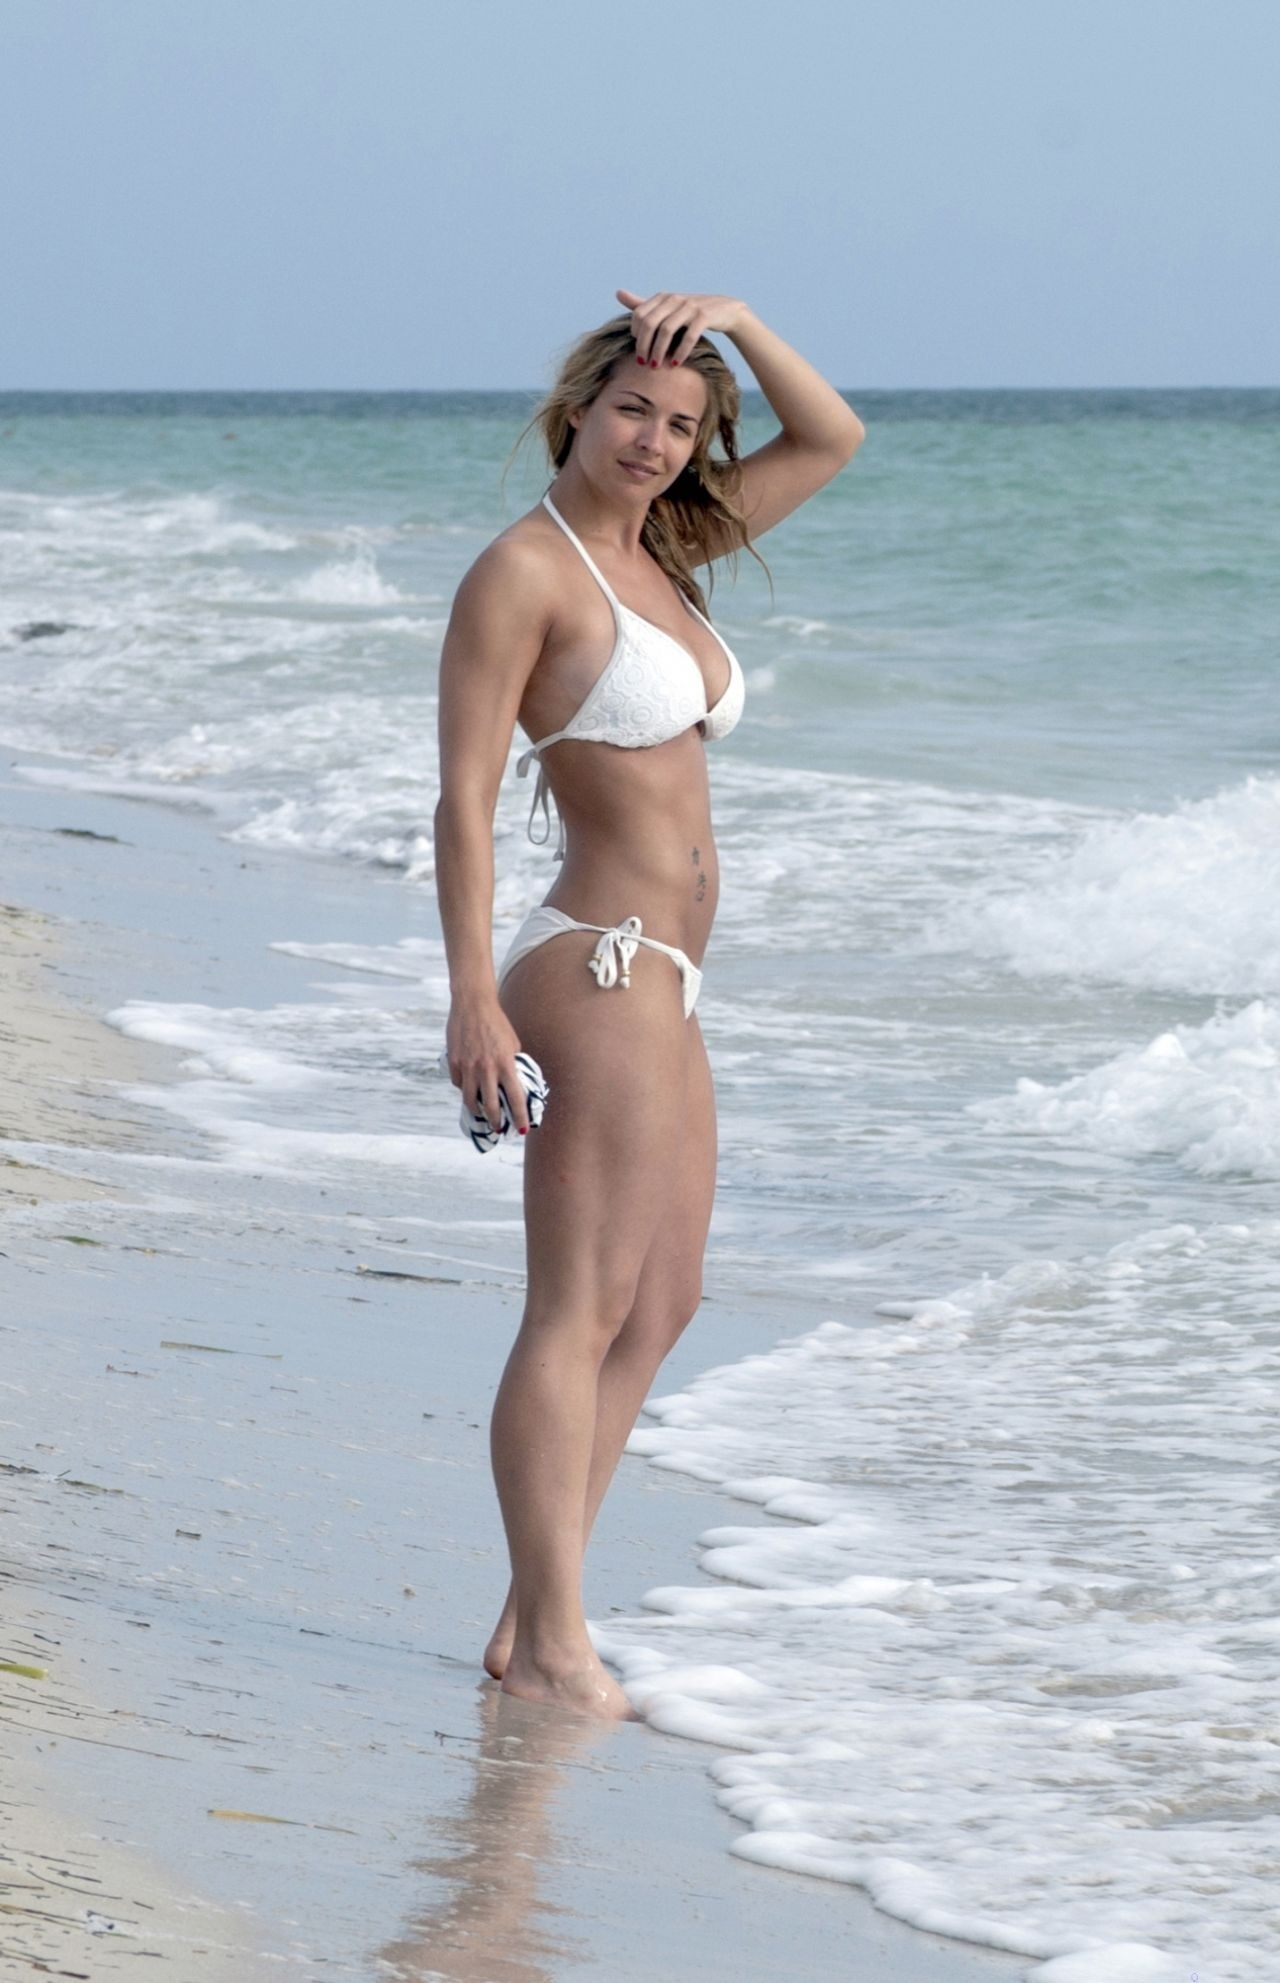 Gemma Atkinson Hot In White Bikini In Cuba July Gemma Atkinson